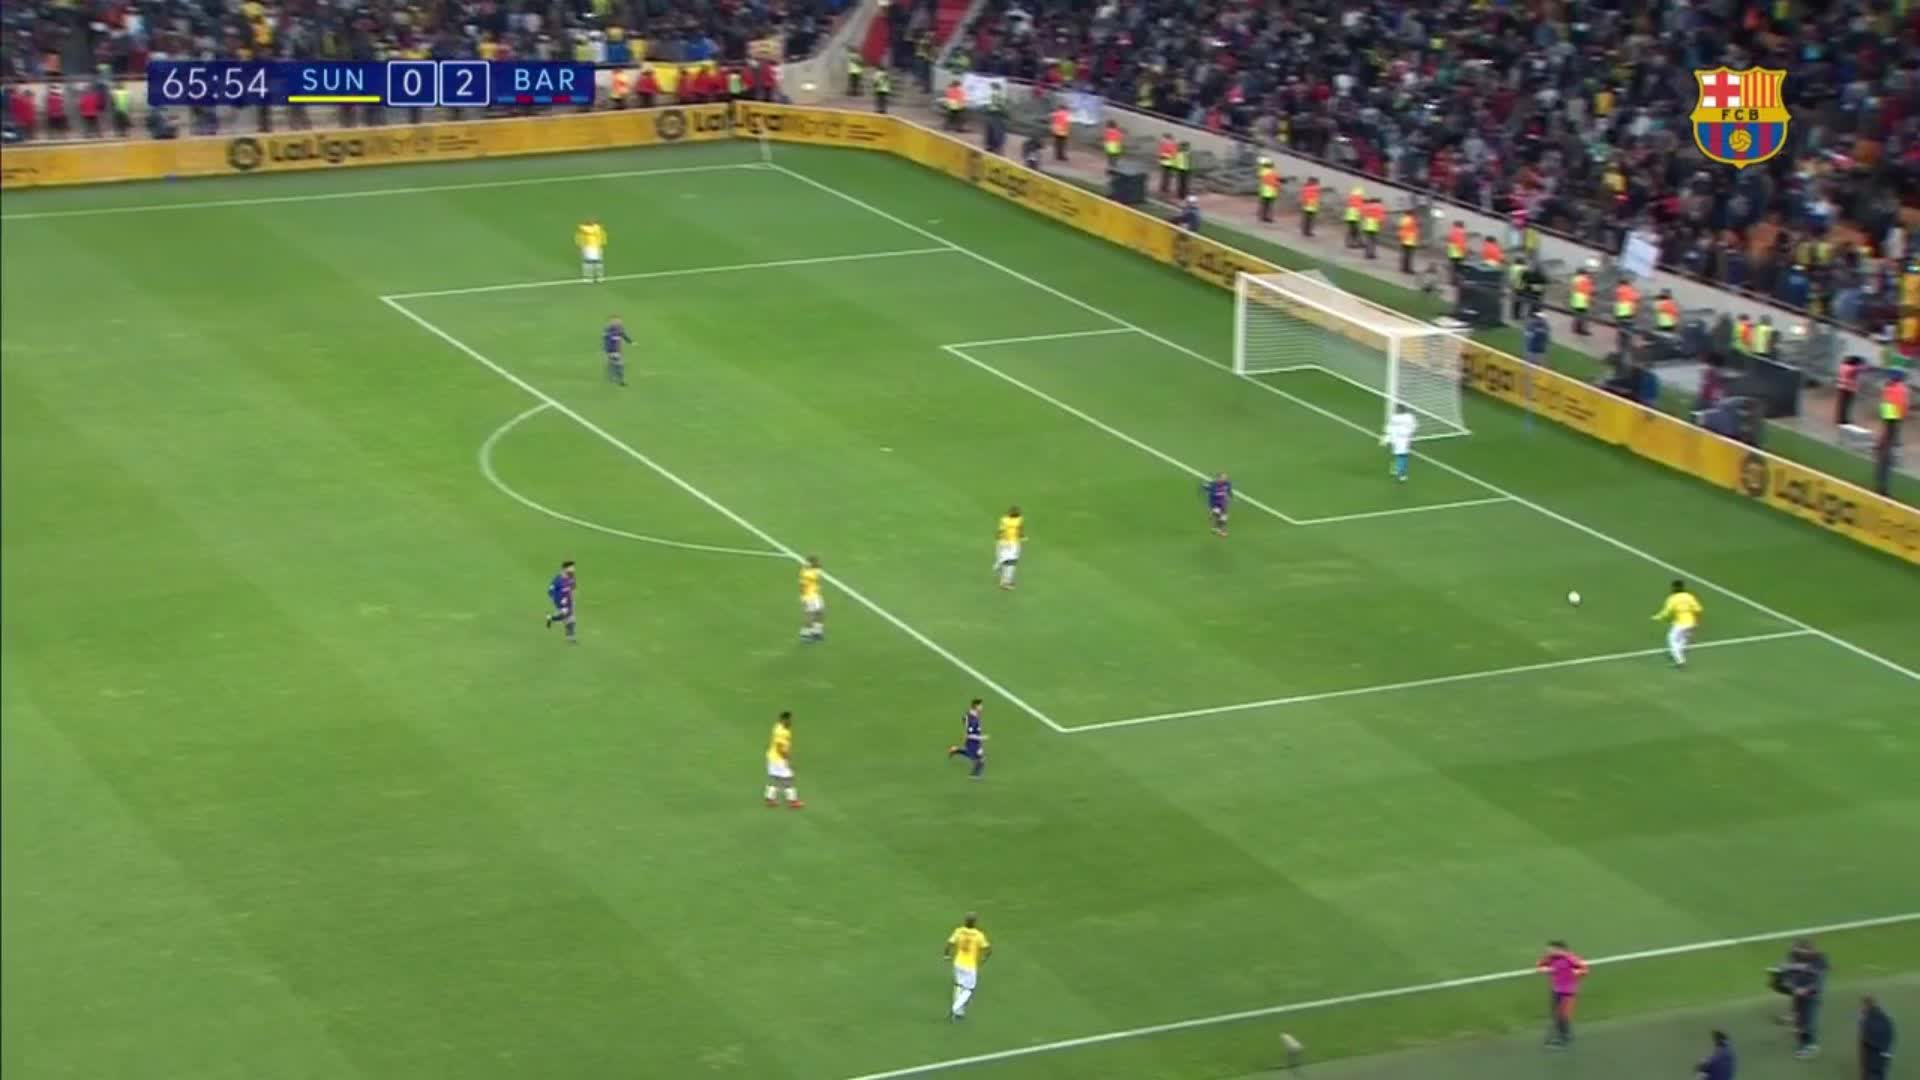 ⚽ Nice finish @aftgomes ! #SundownsBarça (0-3) https://t.co/P2hdKGaMZD